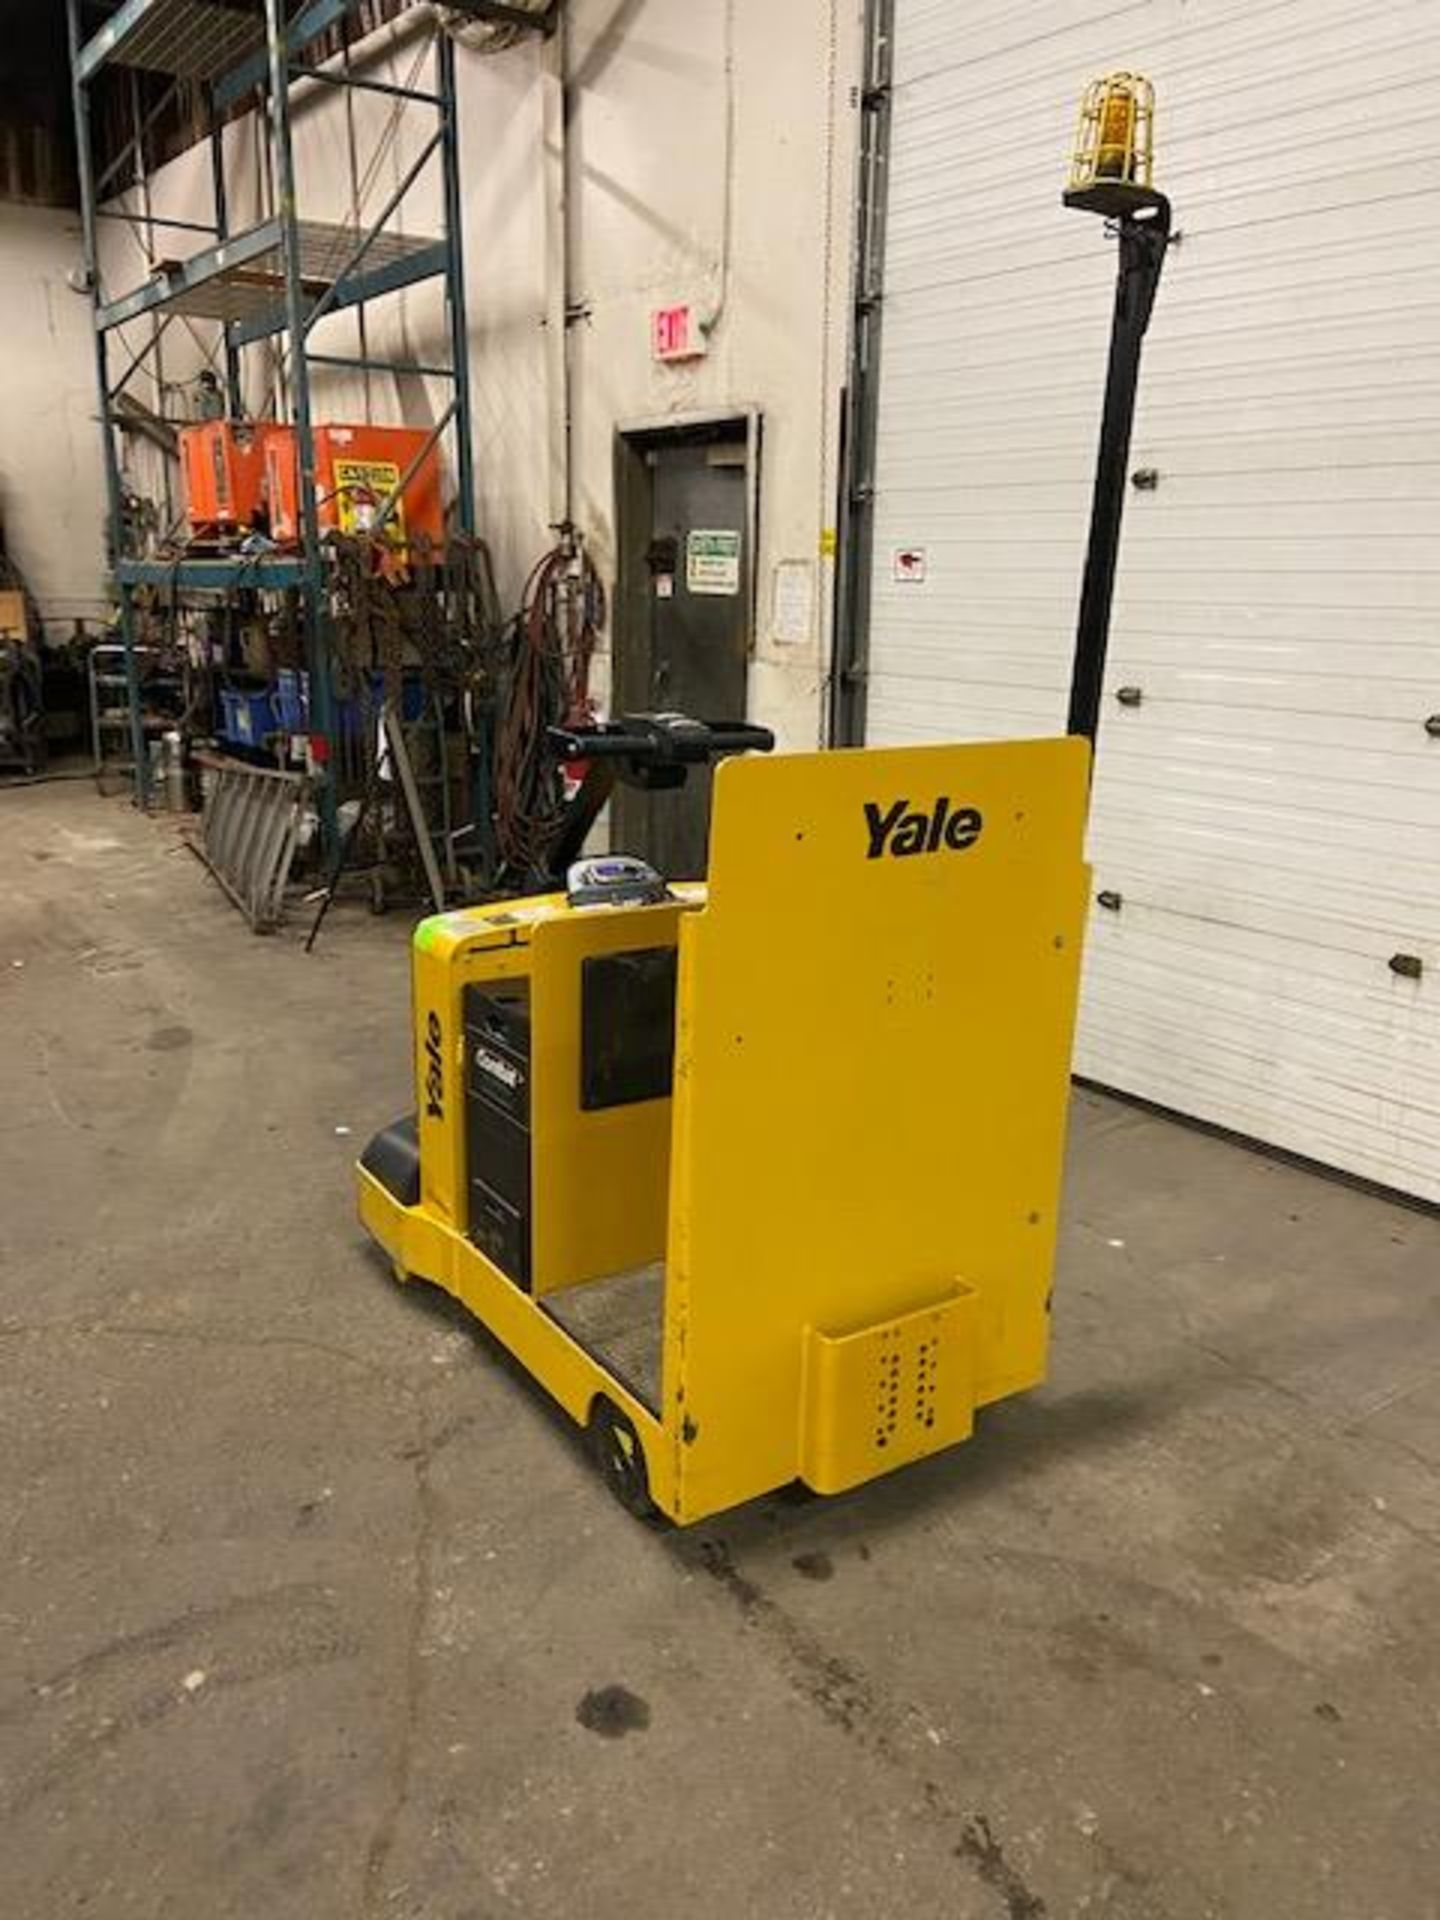 2016 Yale Ride On Tow Tractor - Tugger / Personal Carrier Electric 24V - Image 4 of 4